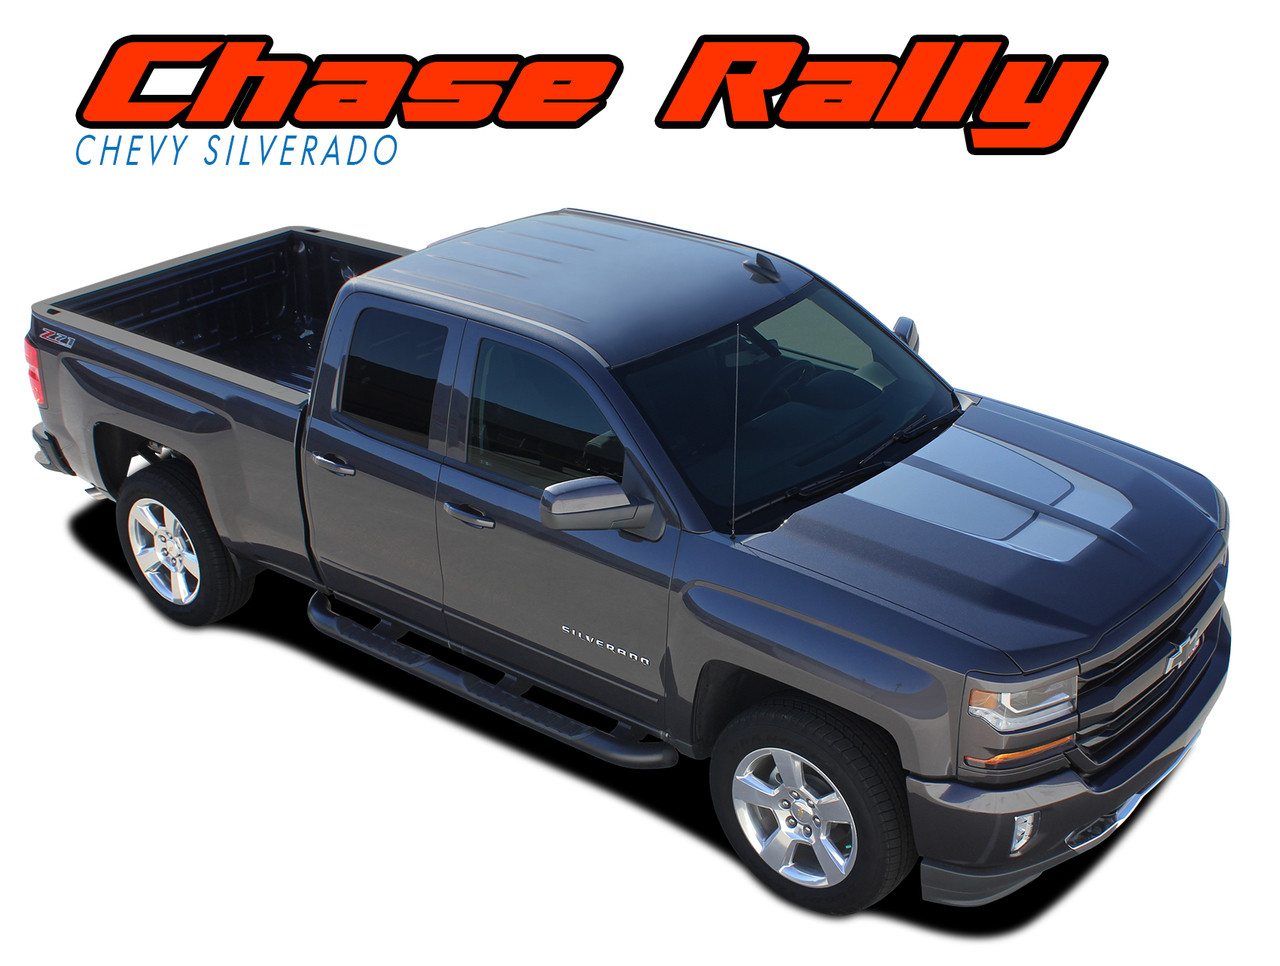 hight resolution of chase rally 2016 2017 2018 chevy silverado rally edition style hood tailgate vinyl graphic decal racing stripe kit vgp 3941